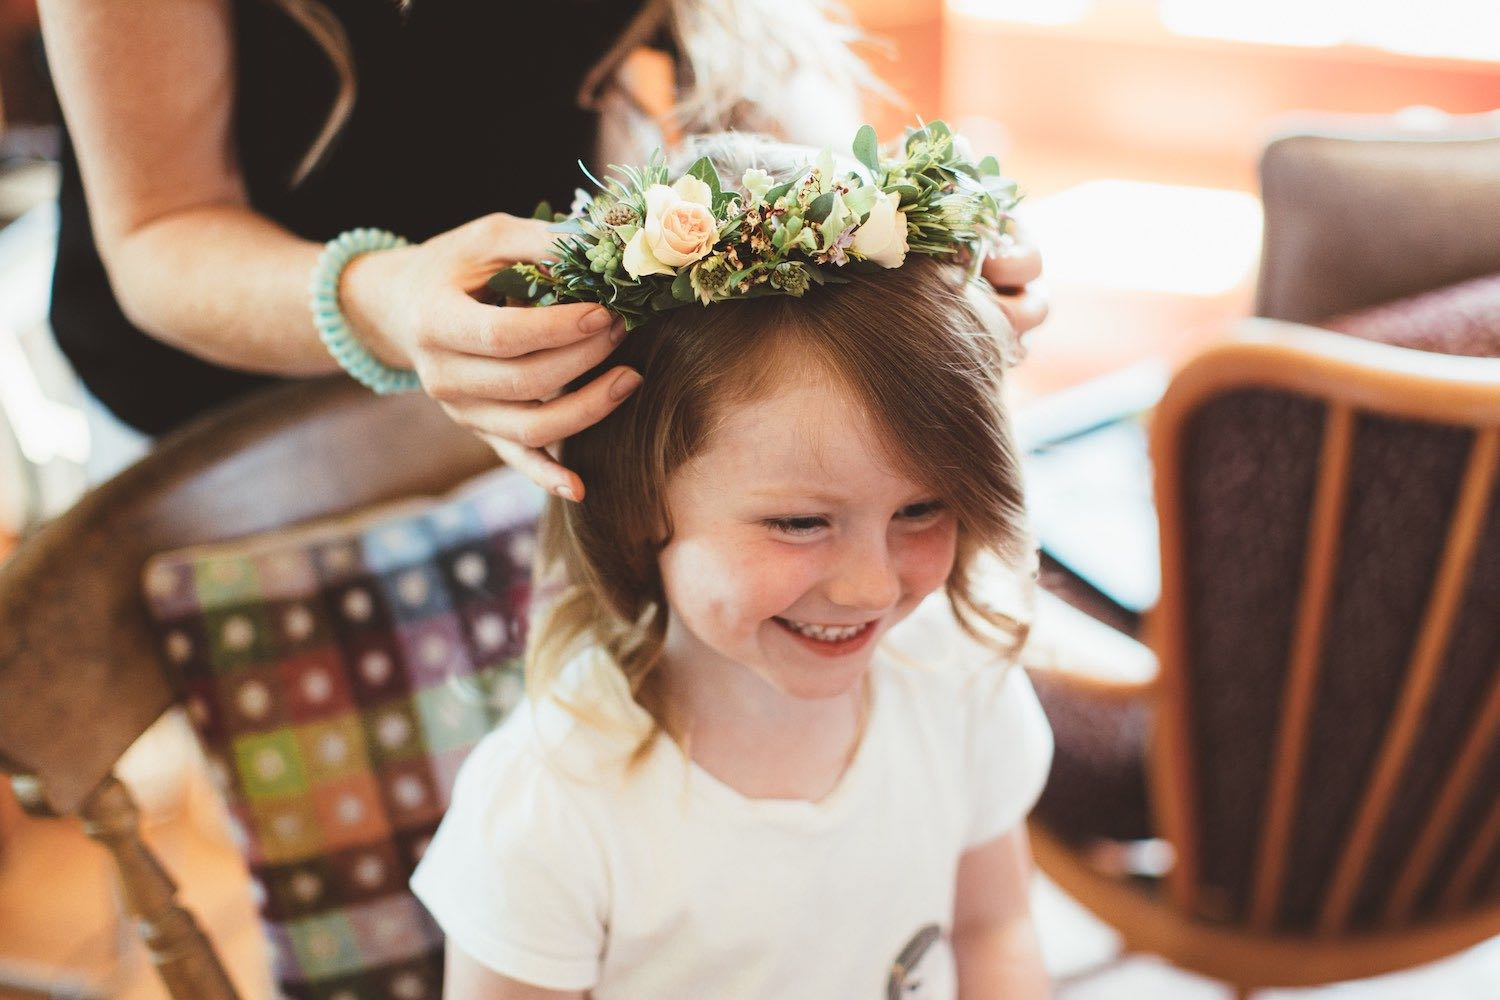 Flower girl with rose flower crown